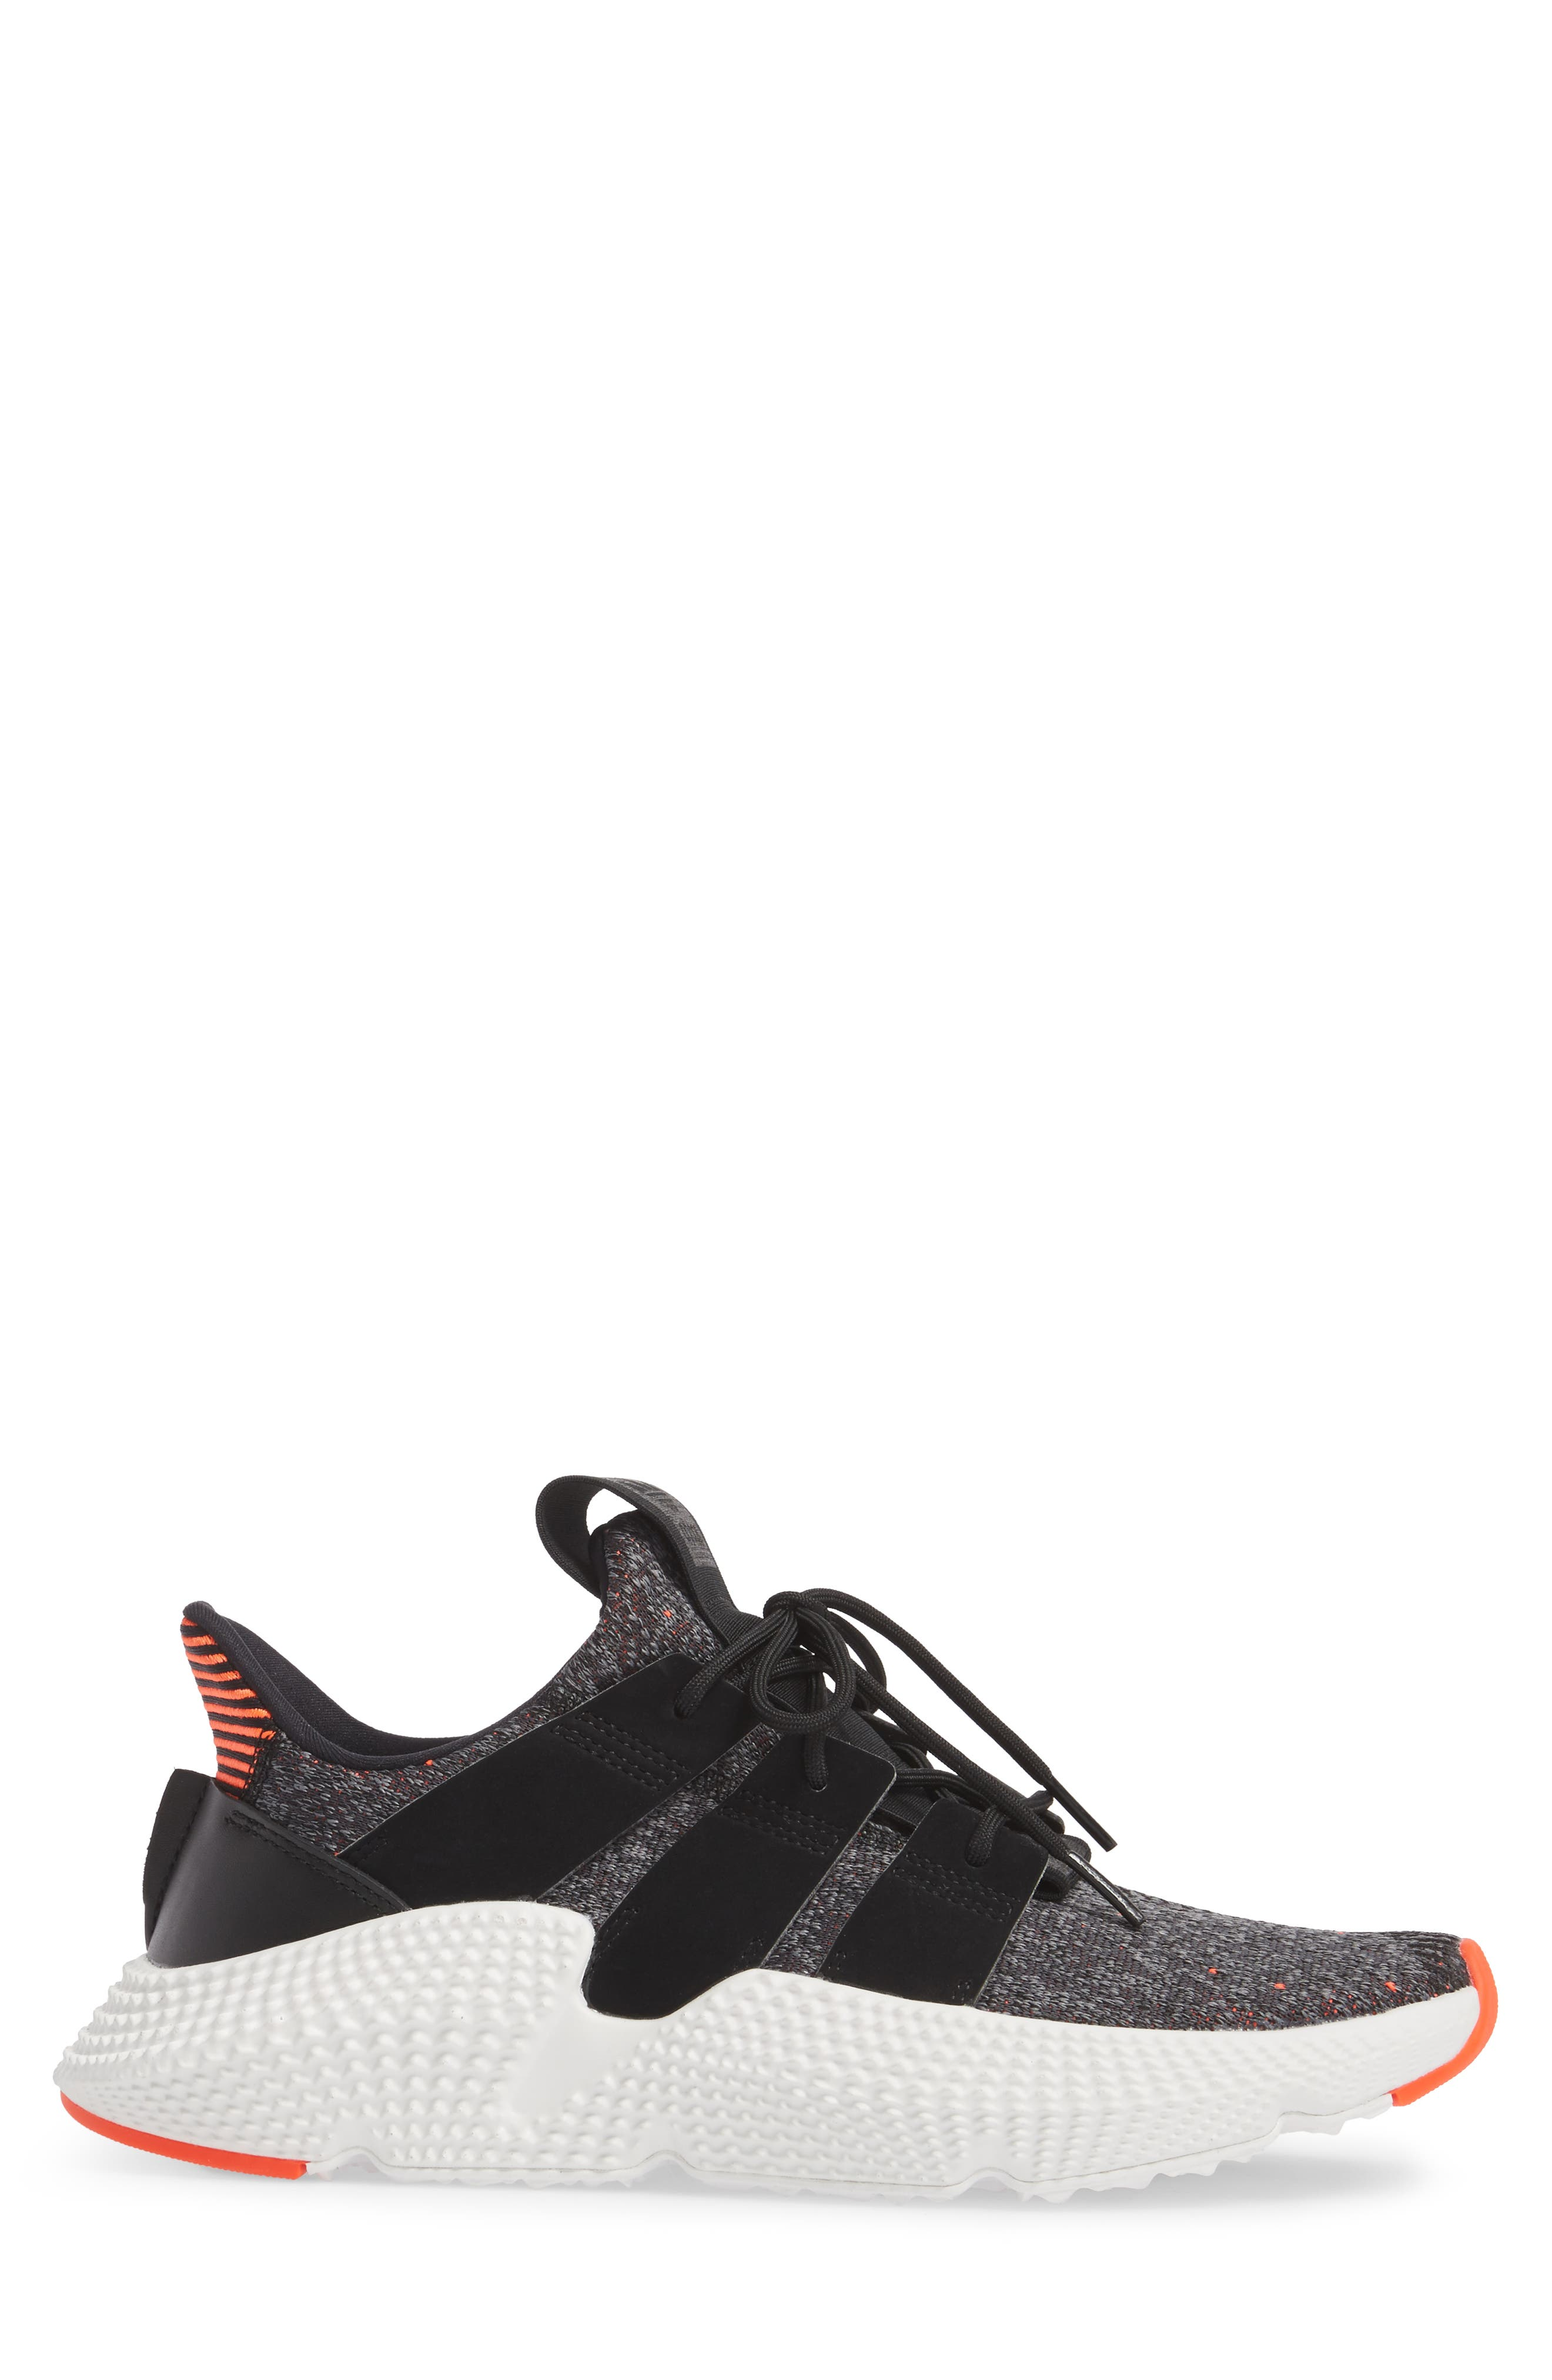 Prophere Sneaker,                             Alternate thumbnail 2, color,                             Black/ Solar Red